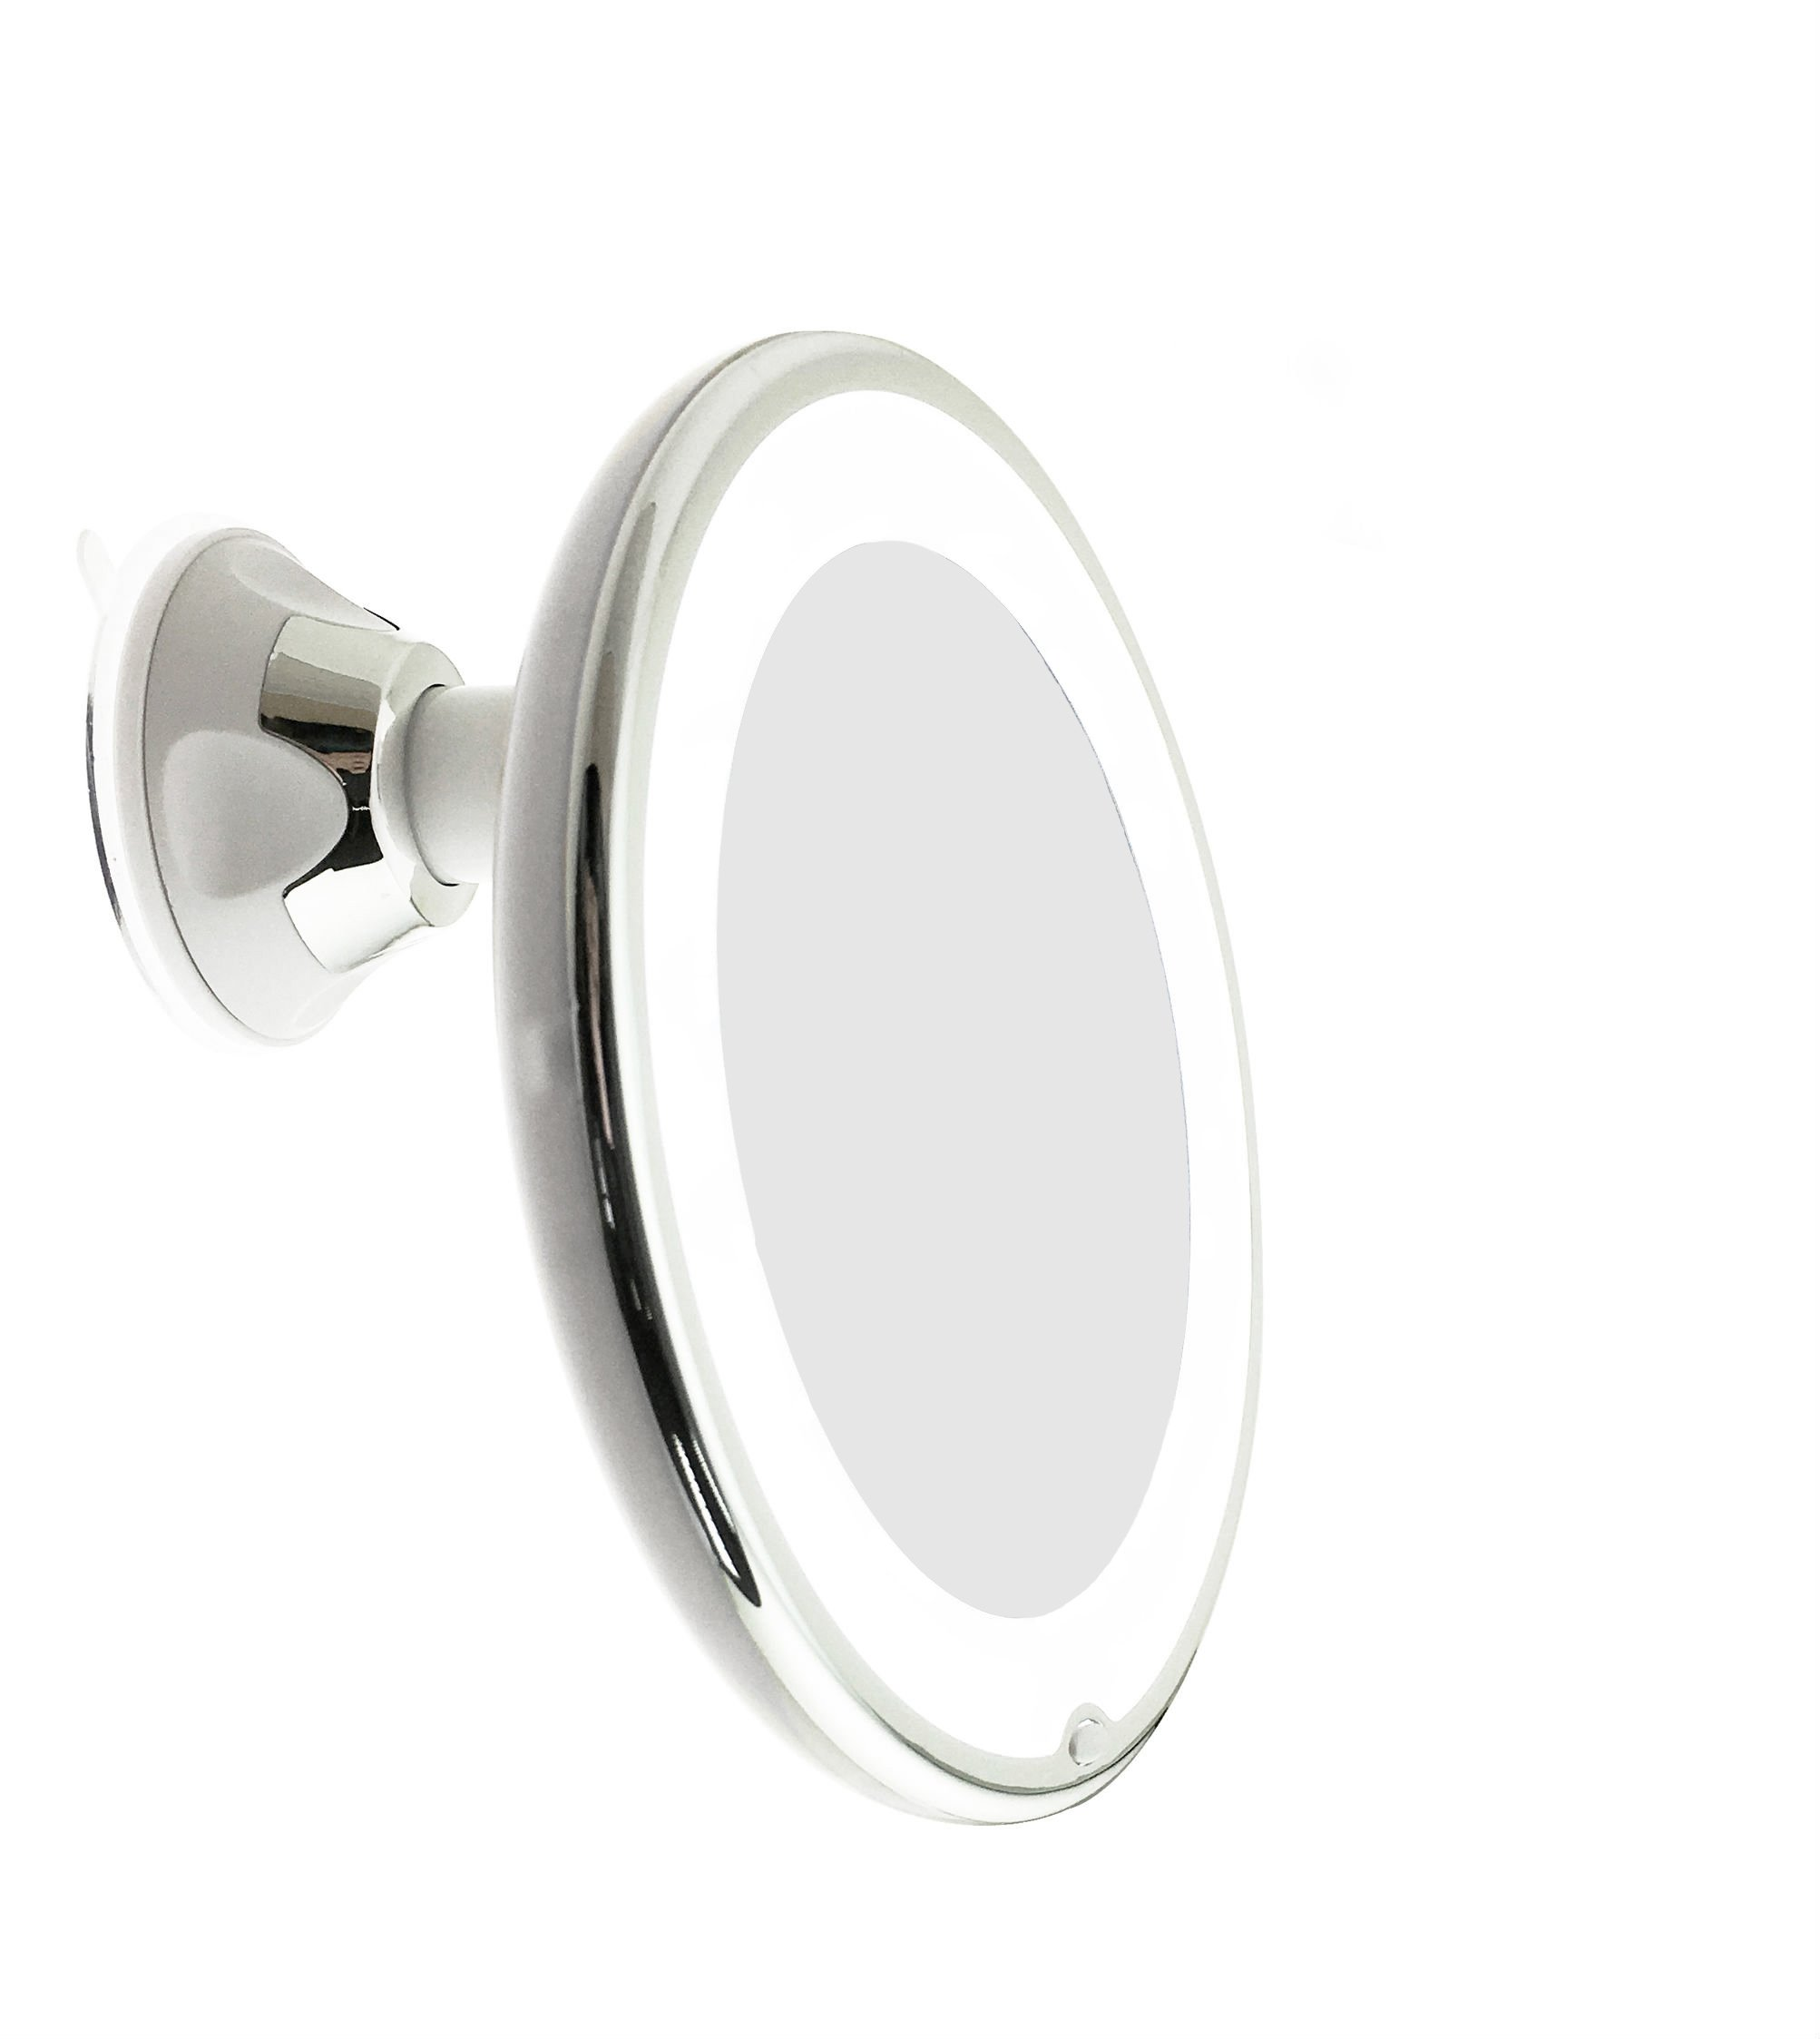 JiBen LED Lighted 7X Magnifying Makeup Mirror with Power Locking Suction Cup, Bright Diffused Light and 360 Degree Rotating Adjustable Arm, Portable Cordless Home and Travel Bathroom Vanity Mirror